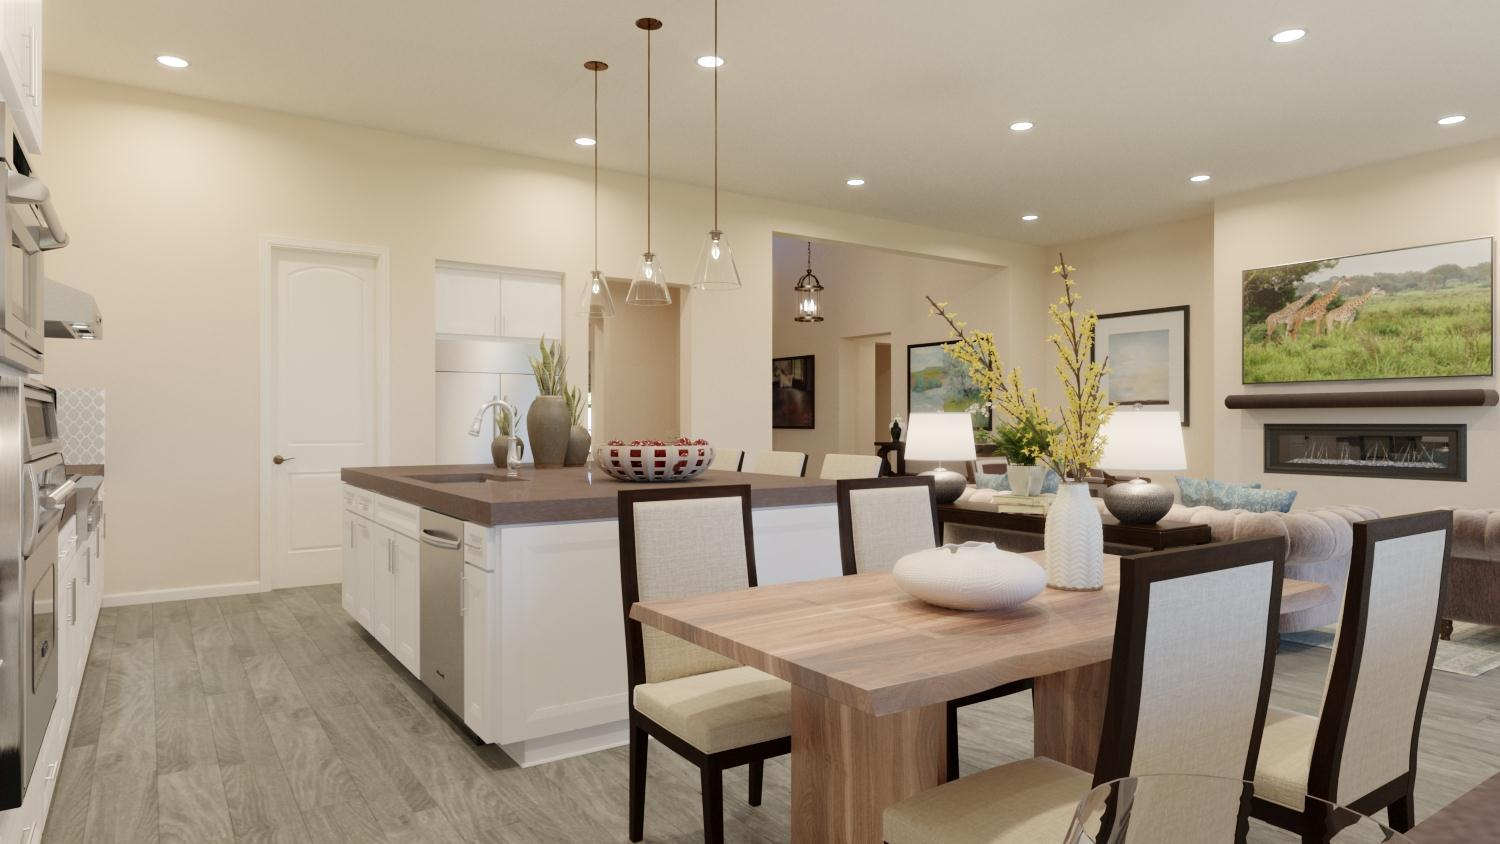 Kitchen featured in the Plan 1 By Capital Pacific Homes in Riverside-San Bernardino, CA